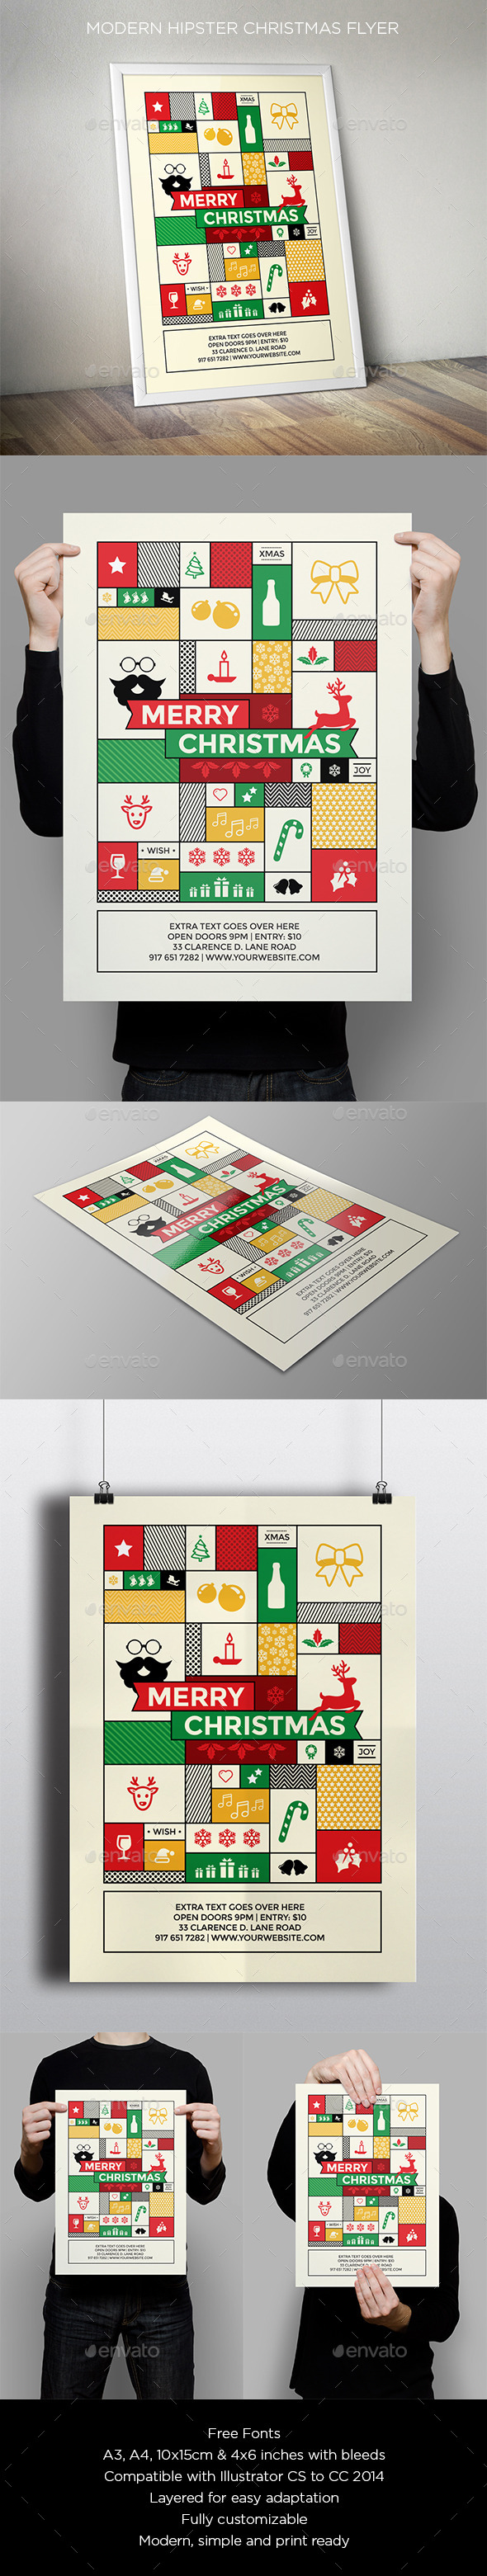 GraphicRiver Modern Hipster Christmas Flyer 9558528